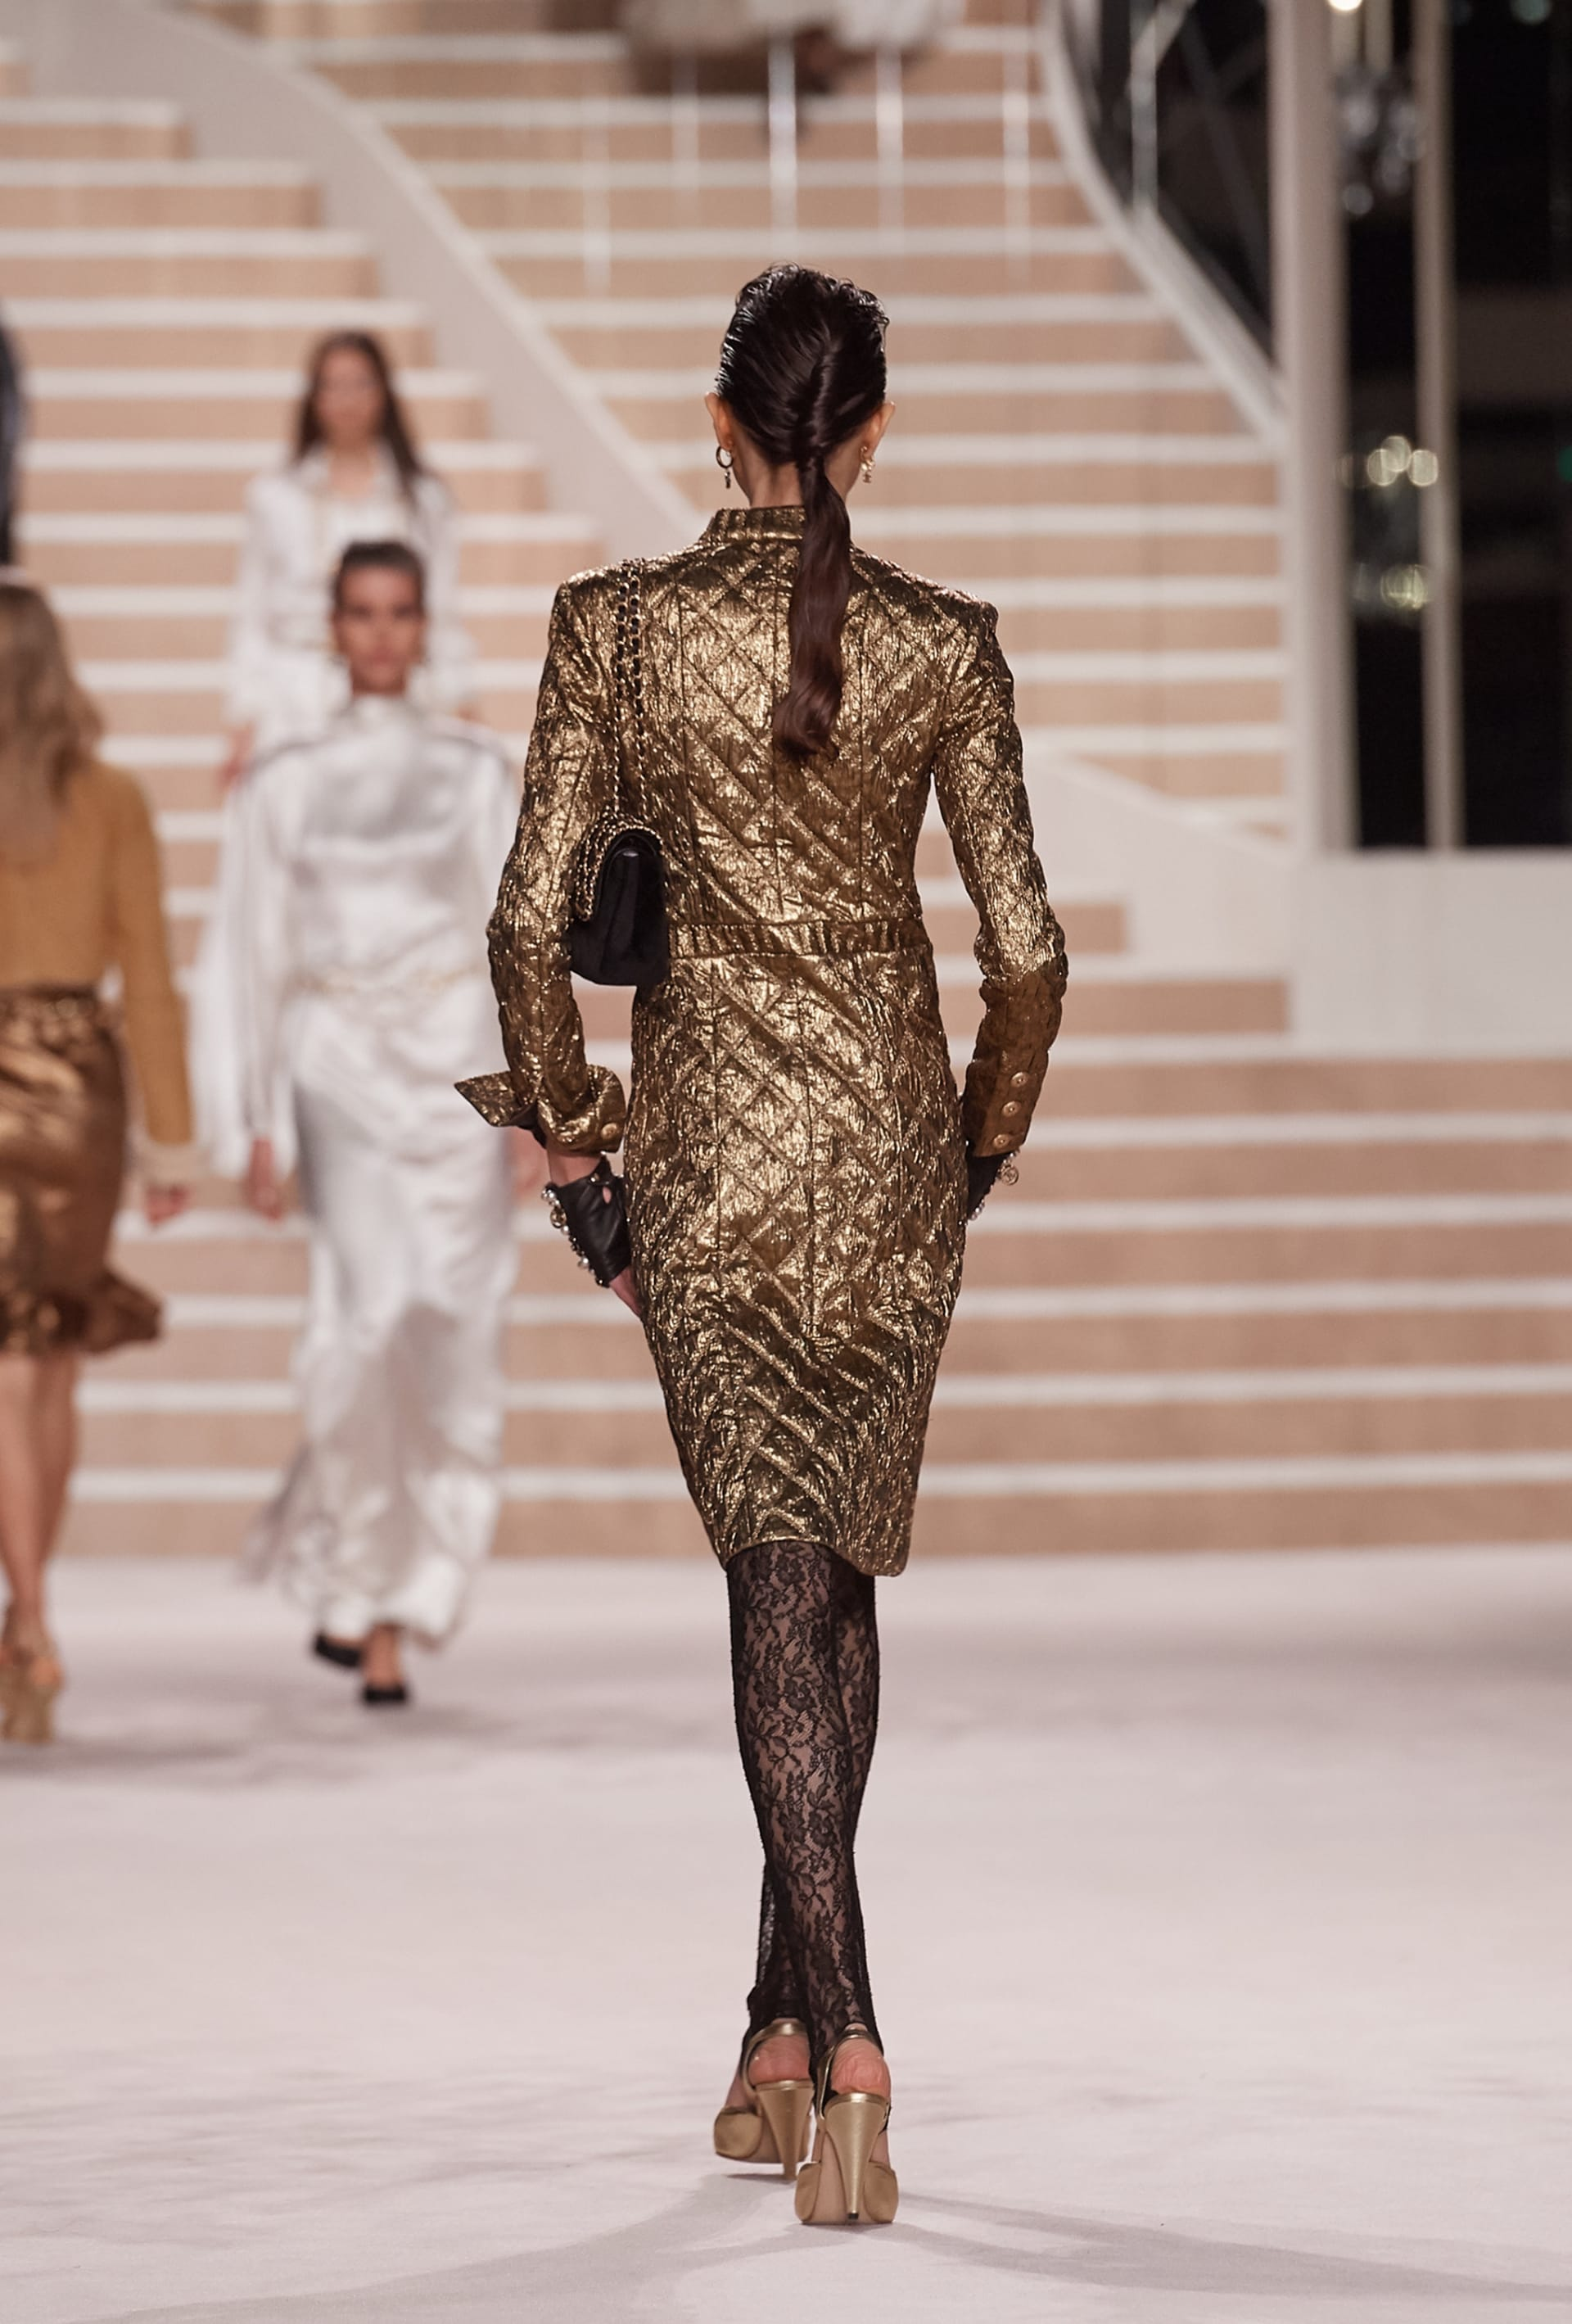 View 4 - Look 51 - Métiers d'Art 2019/20 - see full sized version